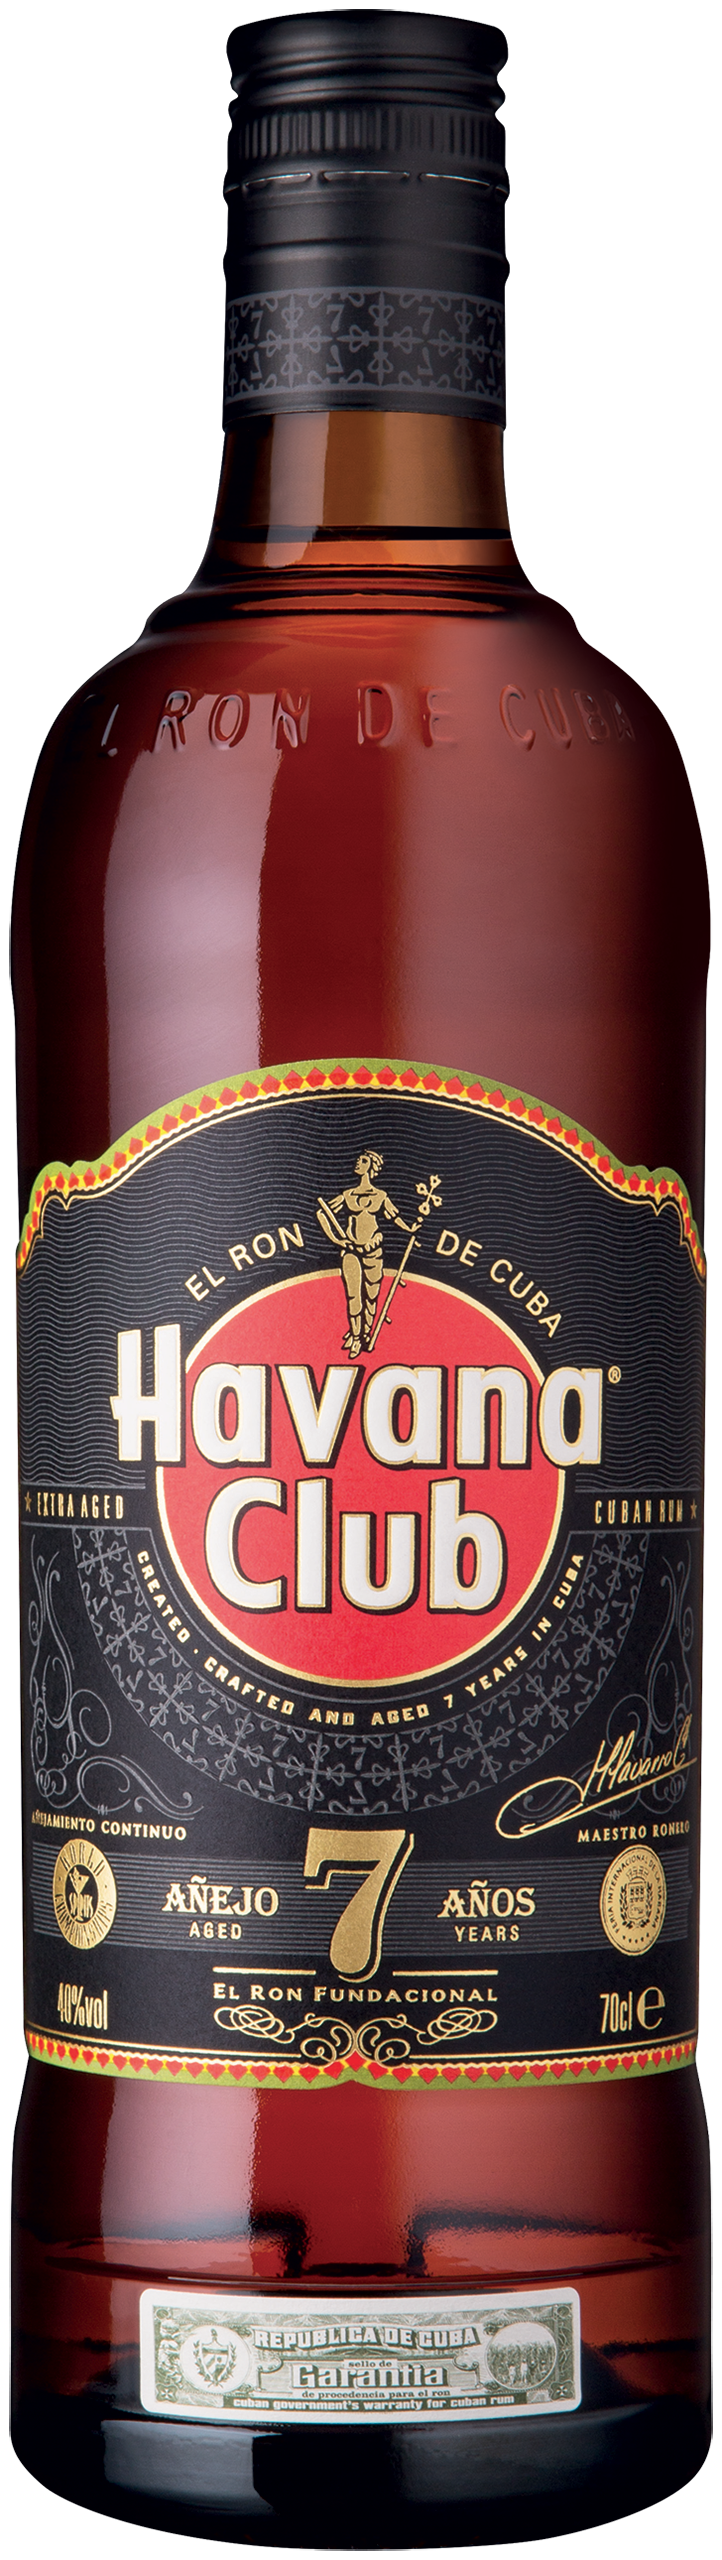 Cuba dating havanna club